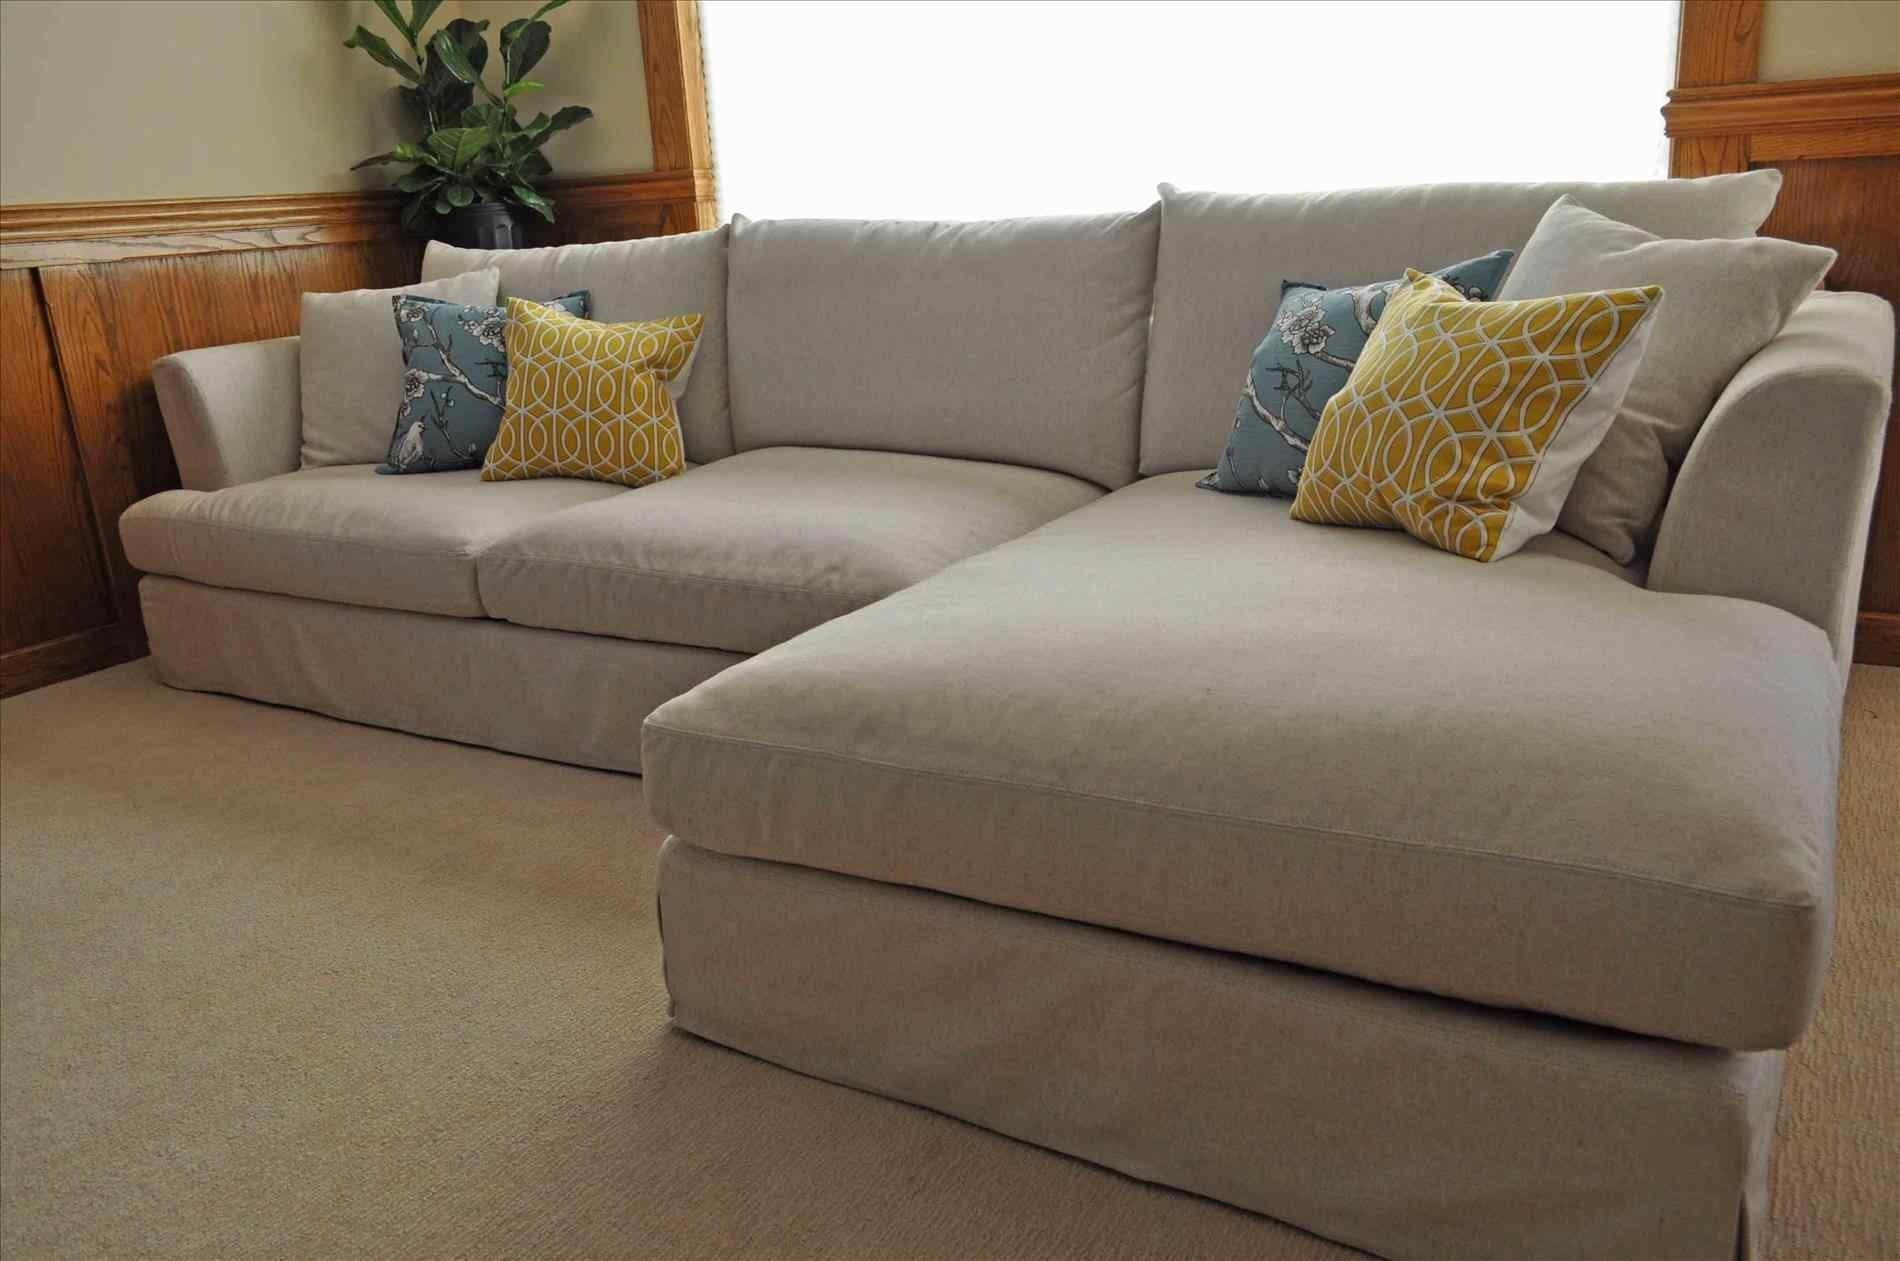 Best 10 Best Affordable Couches Design Ideas For Your Living 400 x 300